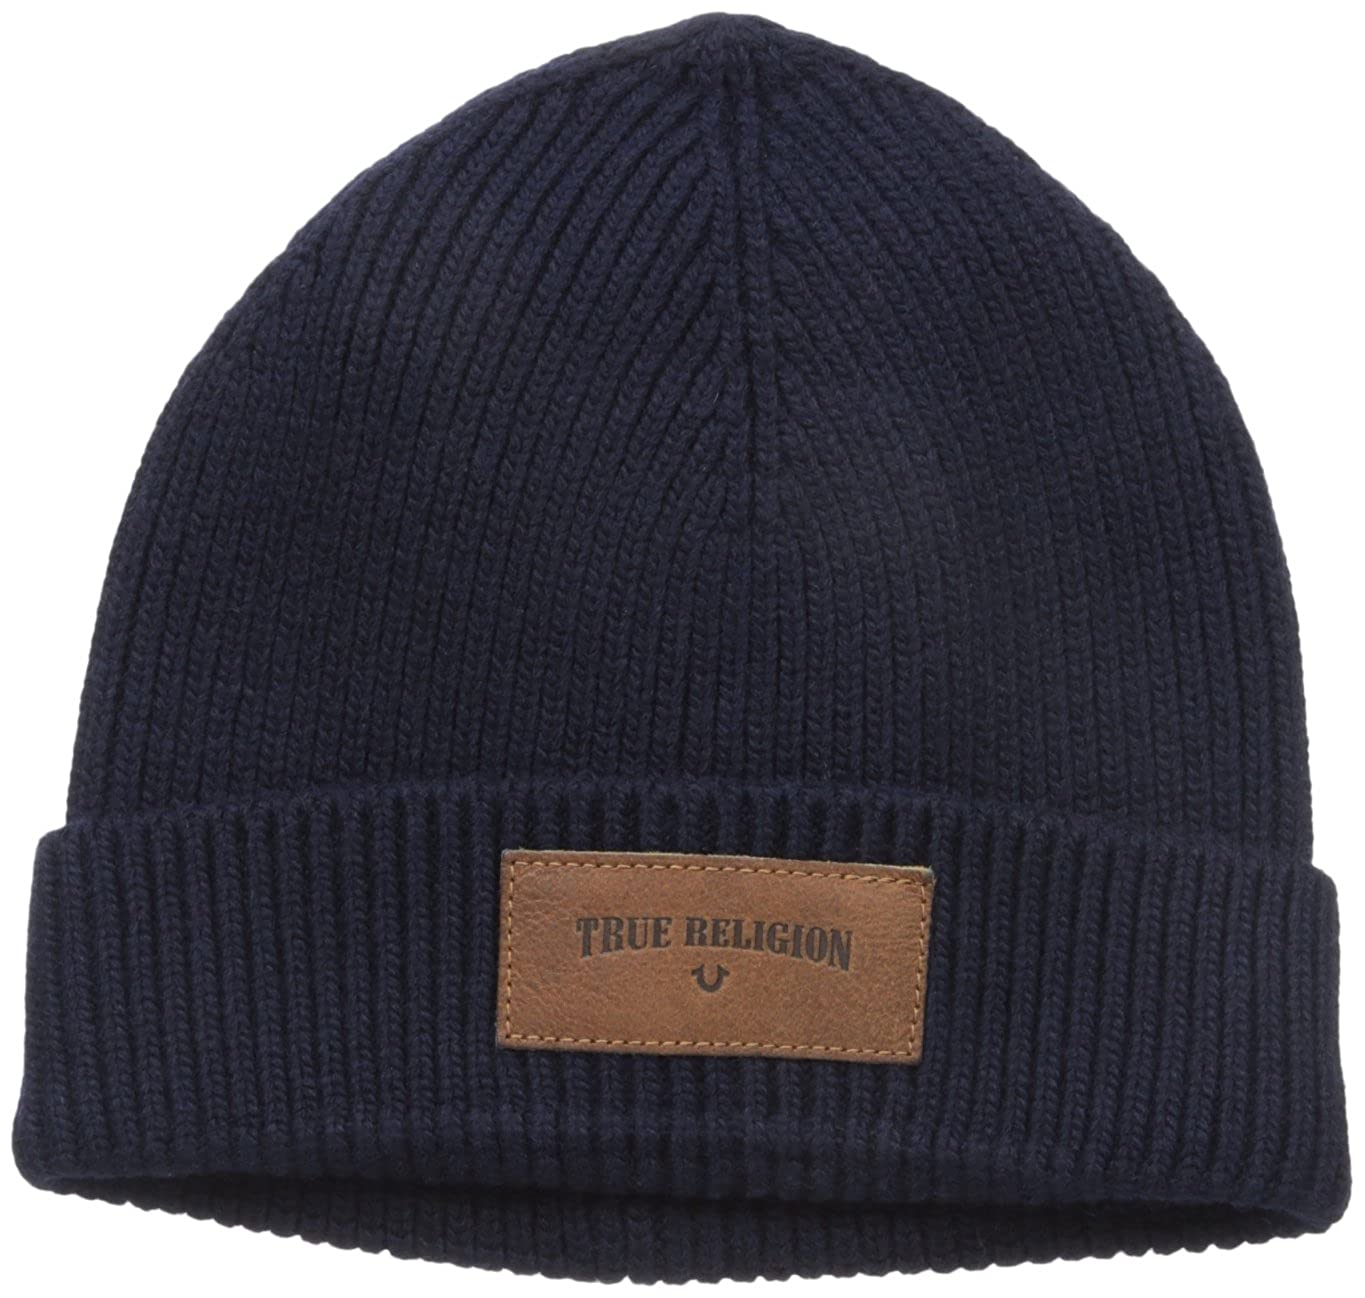 a572b1ed0ae4d Amazon.com  True Religion Men s Ribbed Knit Watchcap with Patch ...